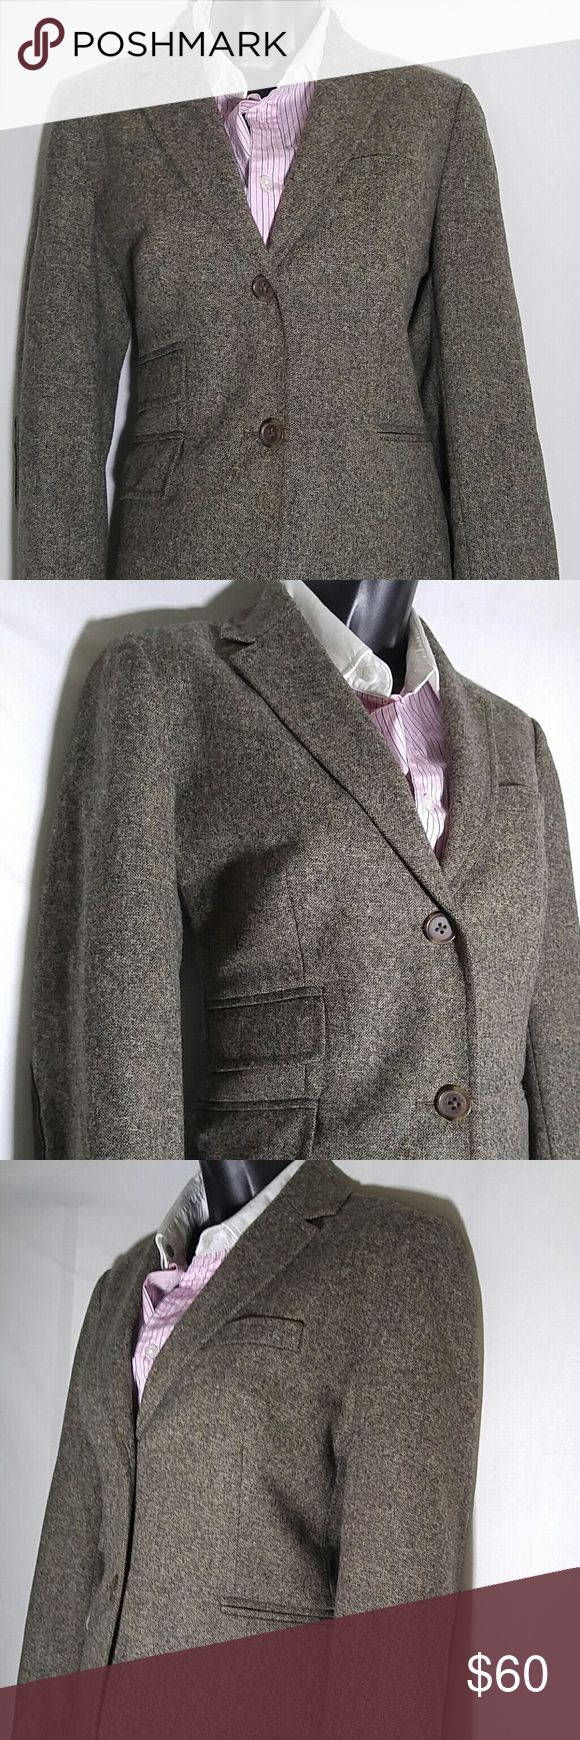 J CREW Beige Tweed Blazer Size 4 J CREW Women's beige tweed blazer with Leather elbow patches, and a center vent.  This blazer is a size 4.  This J CREW Blazer is in excellent condition. J CREW Jackets & Coats Blazers